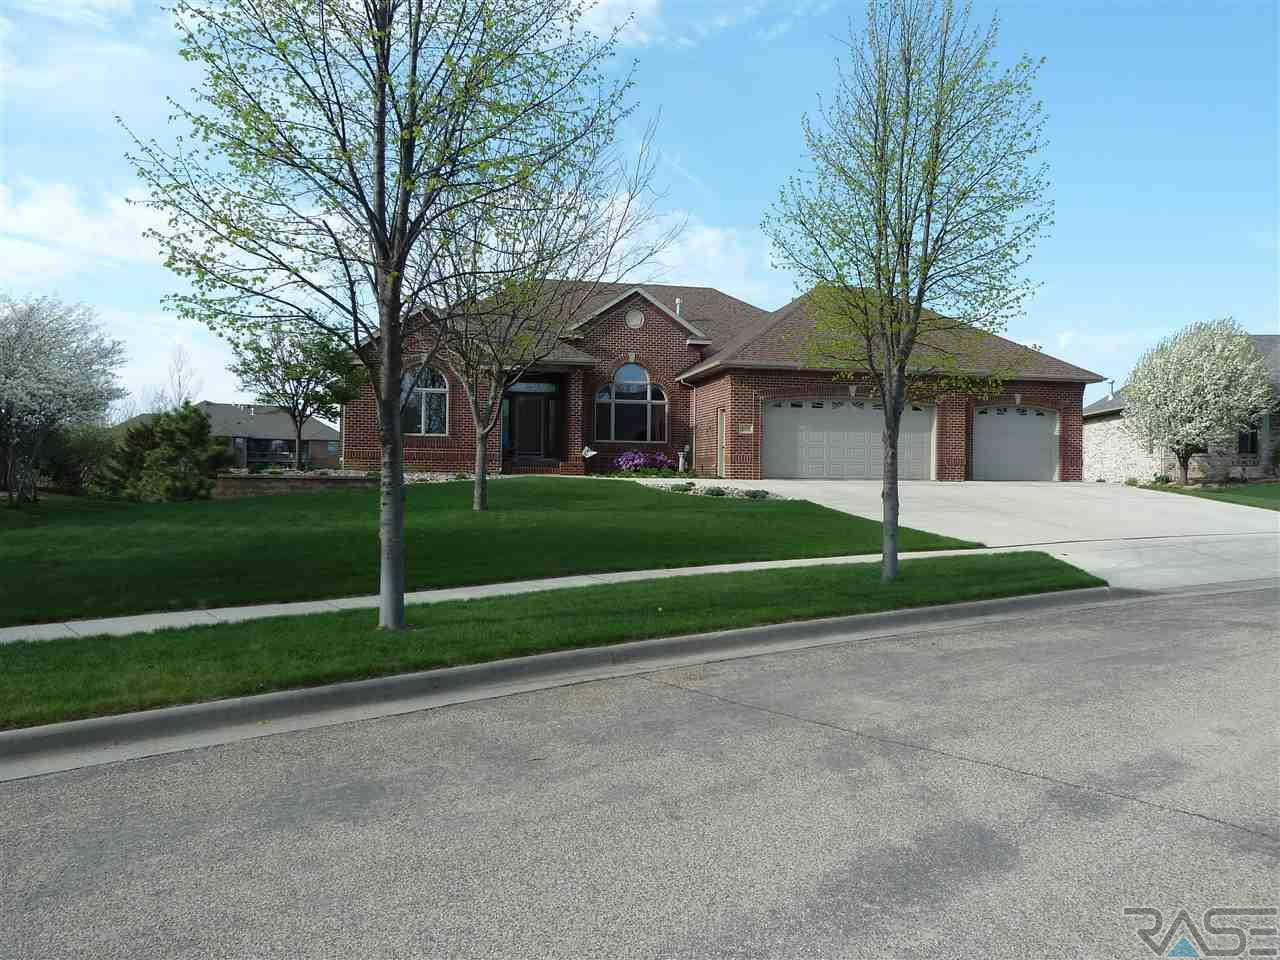 5125 S Barrington Dr, Sioux Falls, SD 57108